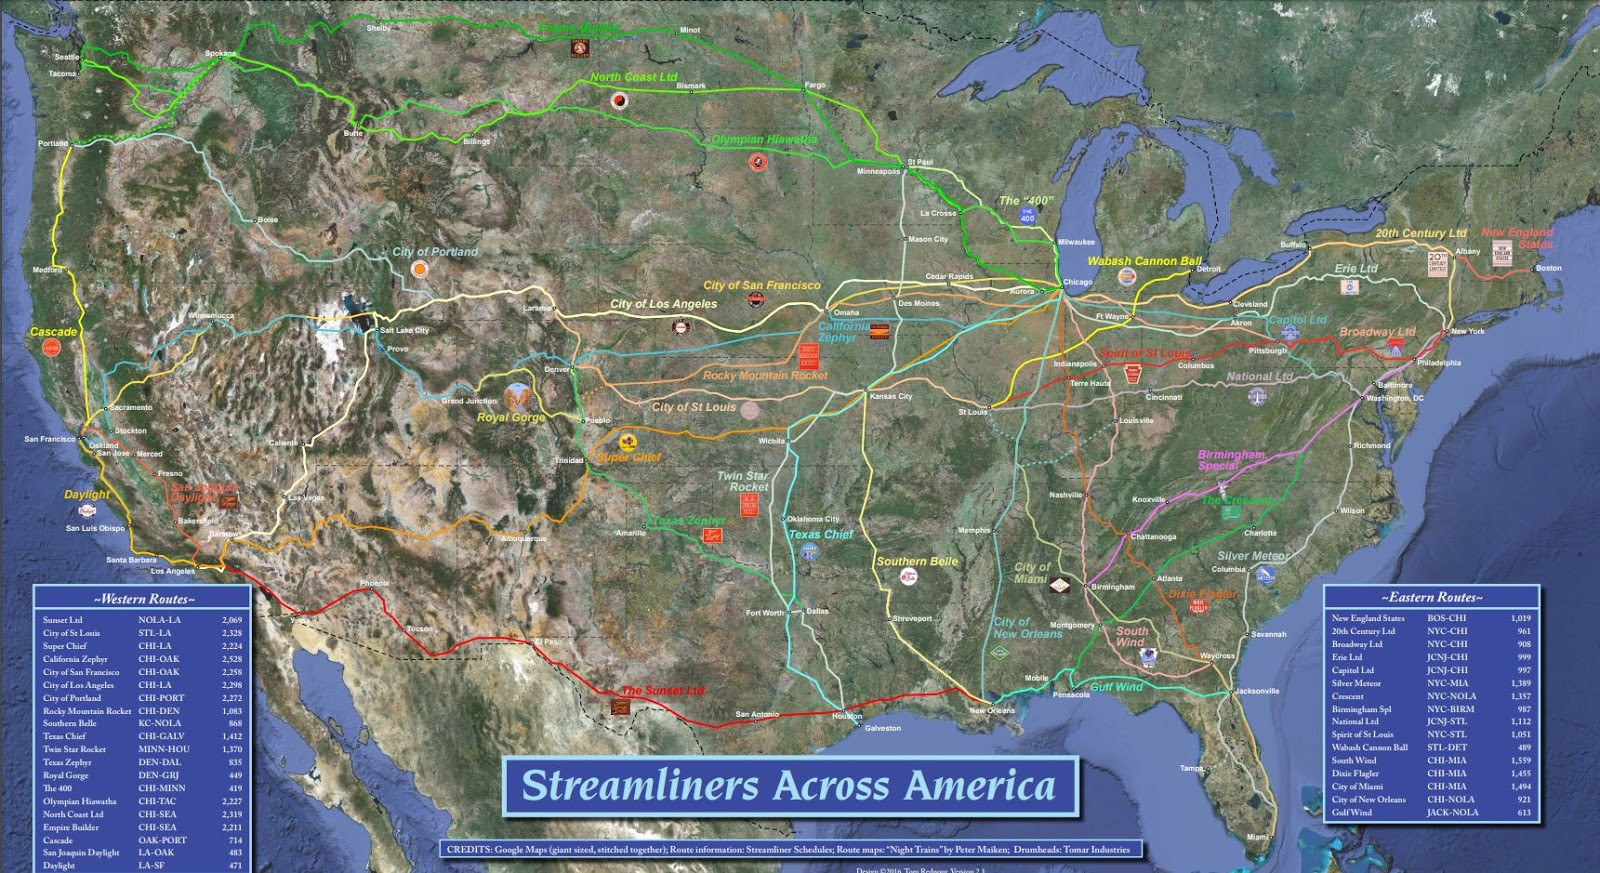 thomas did an amazing map of the 1940s and 50s streamliner trains